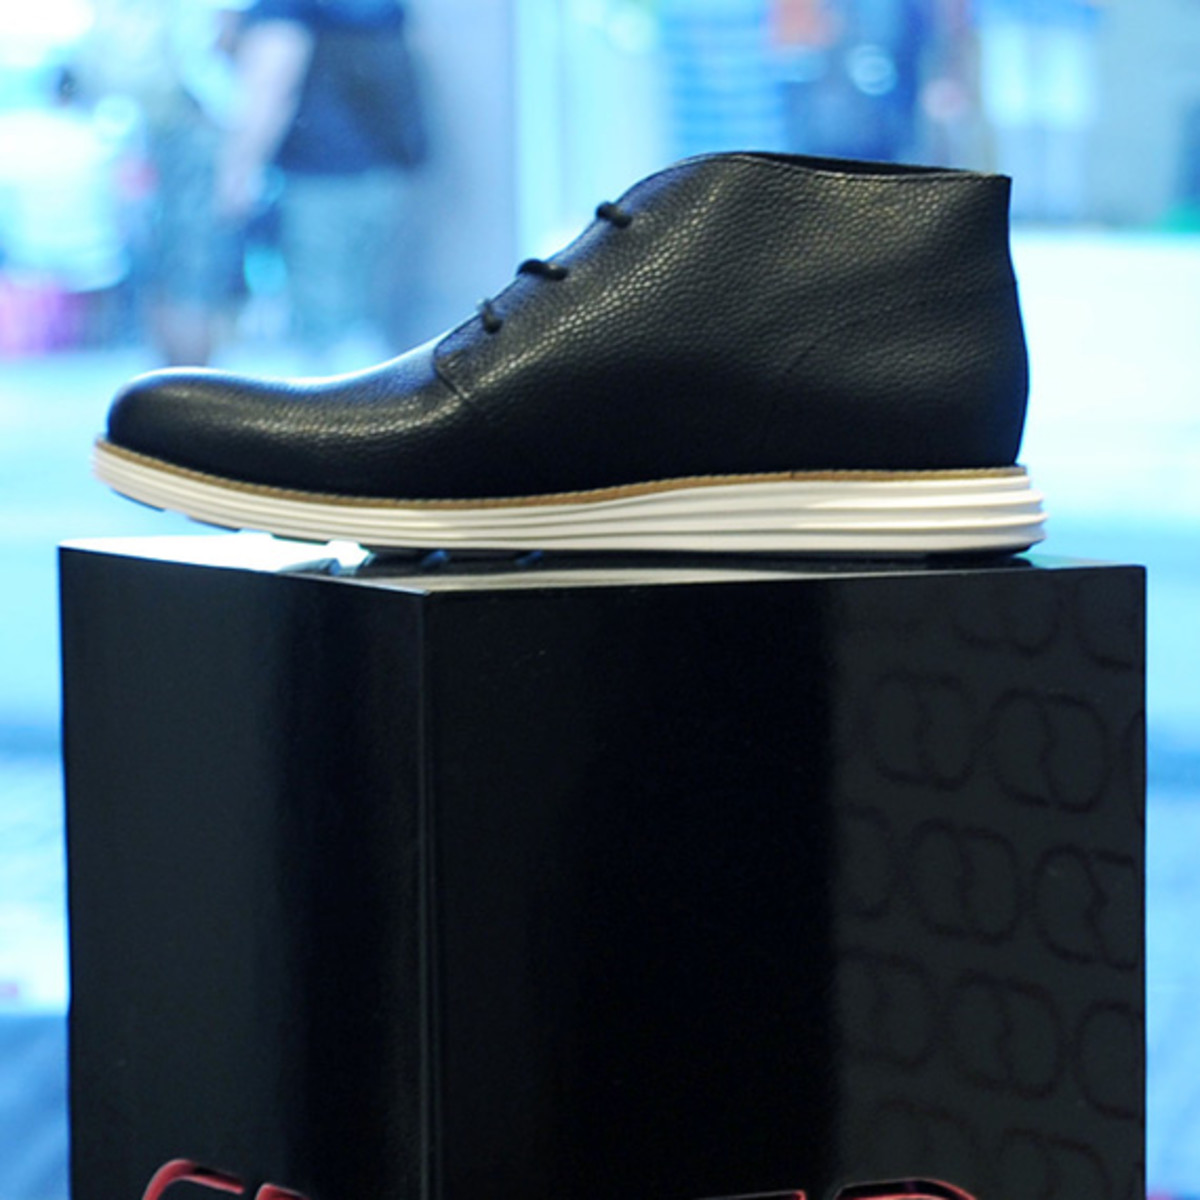 fragment-design-cole-haan-lunargrand-collection-launch-05